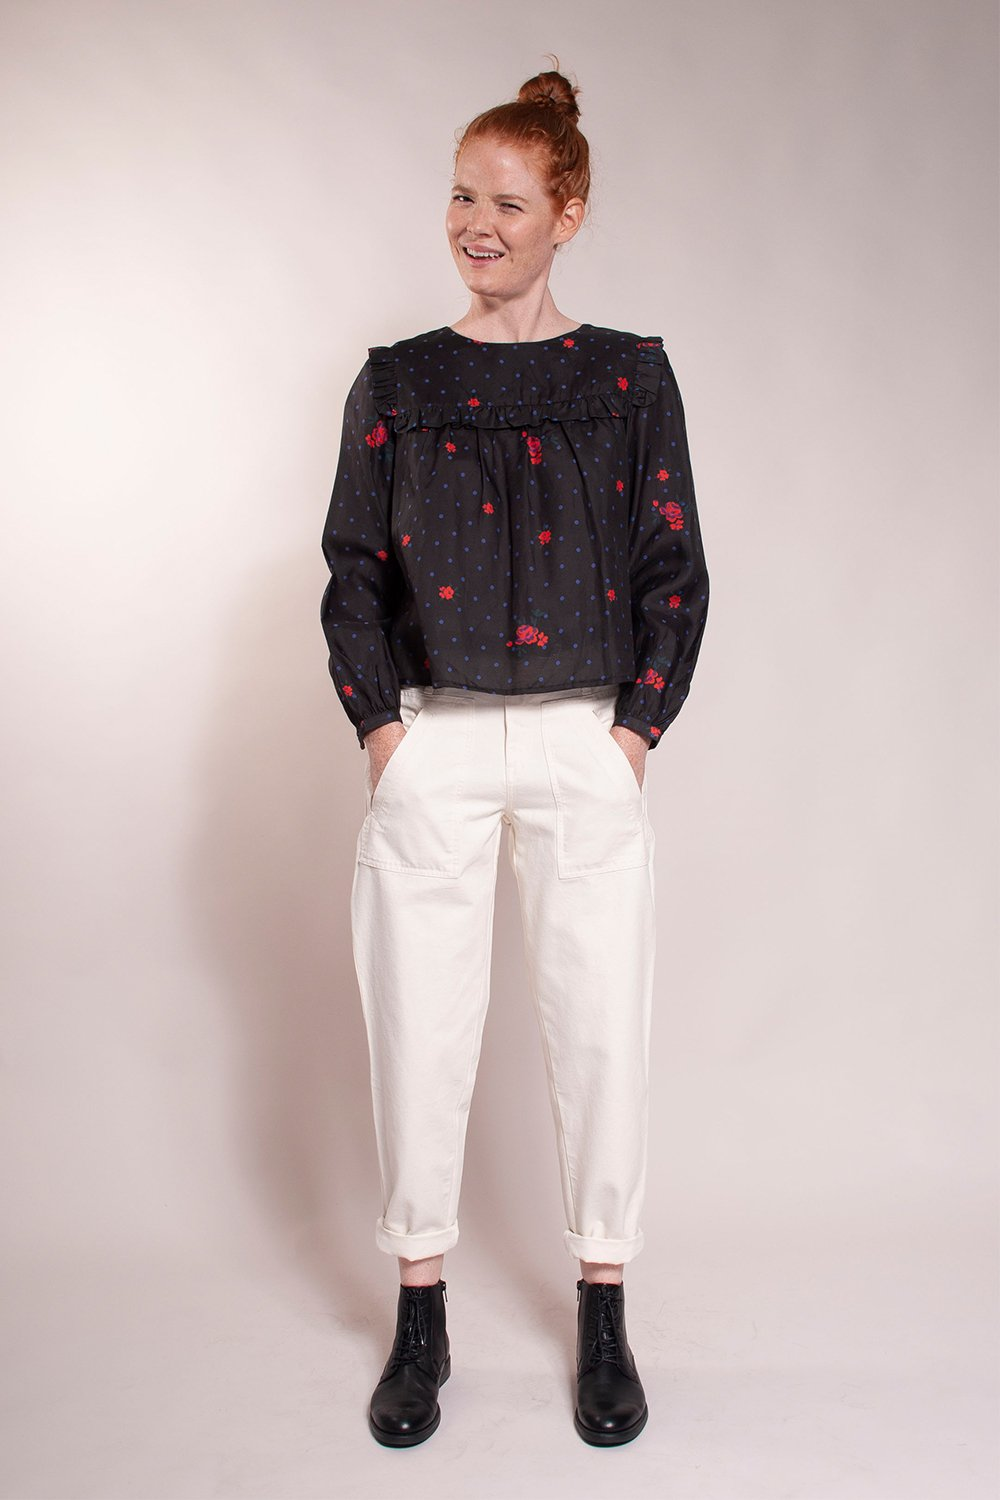 Ruffle yoke, 3/4 puff sleeves, single button back, waist length blouse. 38% silk/ 62%  cotton. Built by Wendy proprietary print.